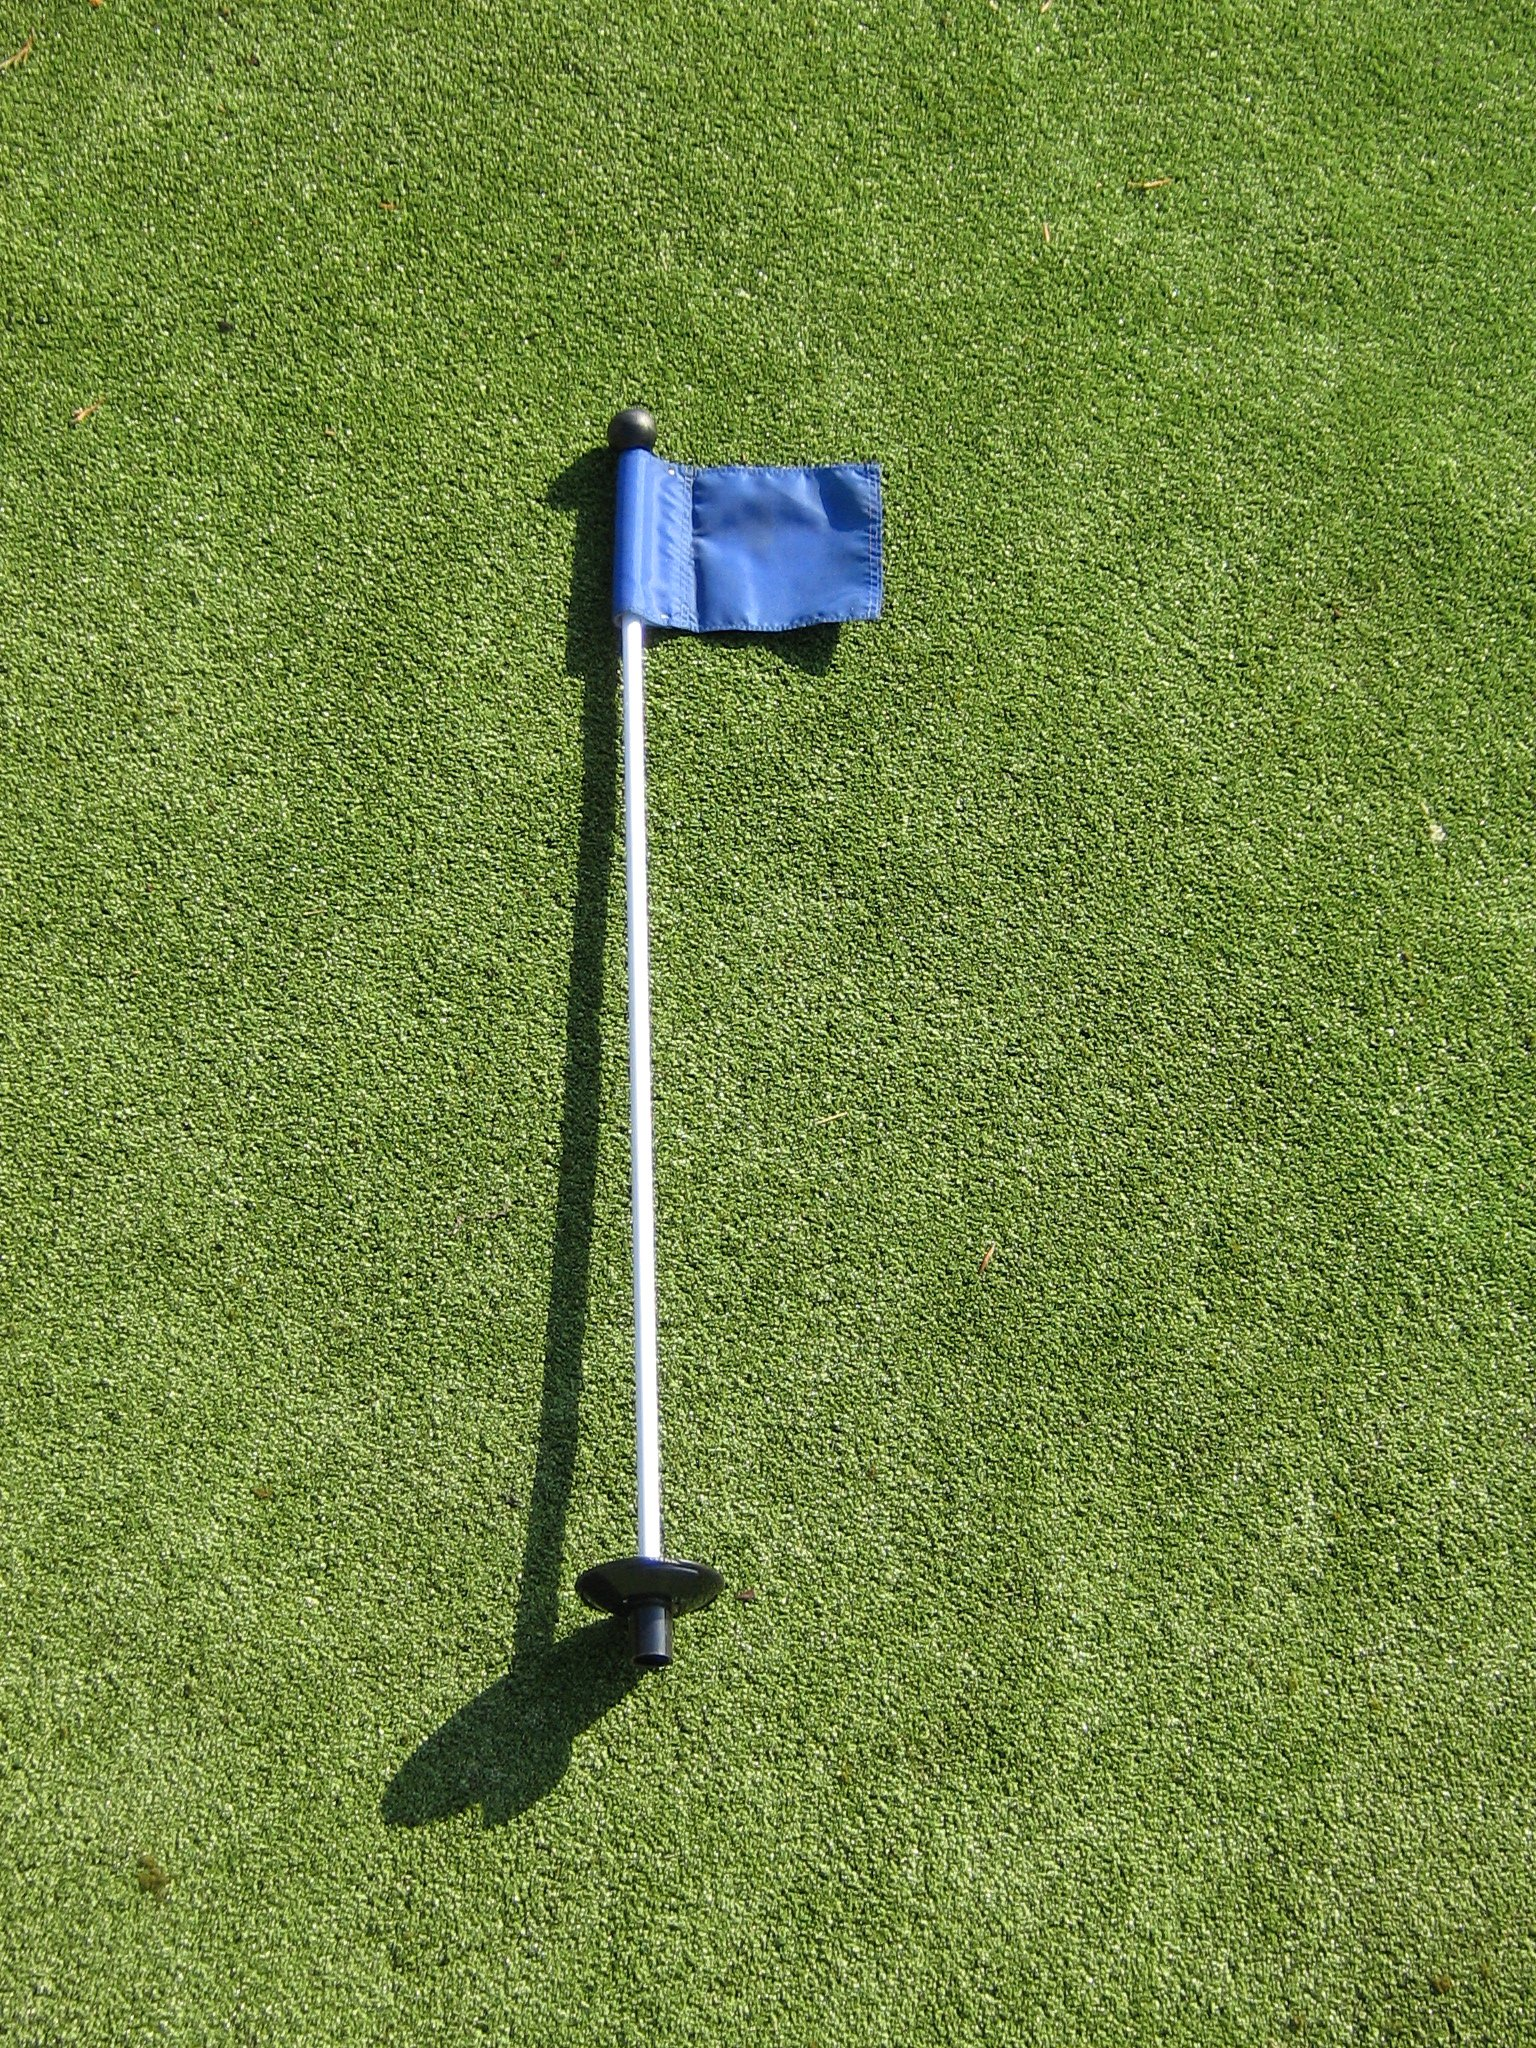 Practice Putting Green - Natural or Synthetic - Accessory Kit - (3) Aluminum 4'' Deep Regulation Cups + (1) Solid Blue Jr. Flag + (1) 30'' Golf Pin Marker w/ Easy Grip Knob & Attached Ball Lifter Disk by ShopTJB (Image #2)